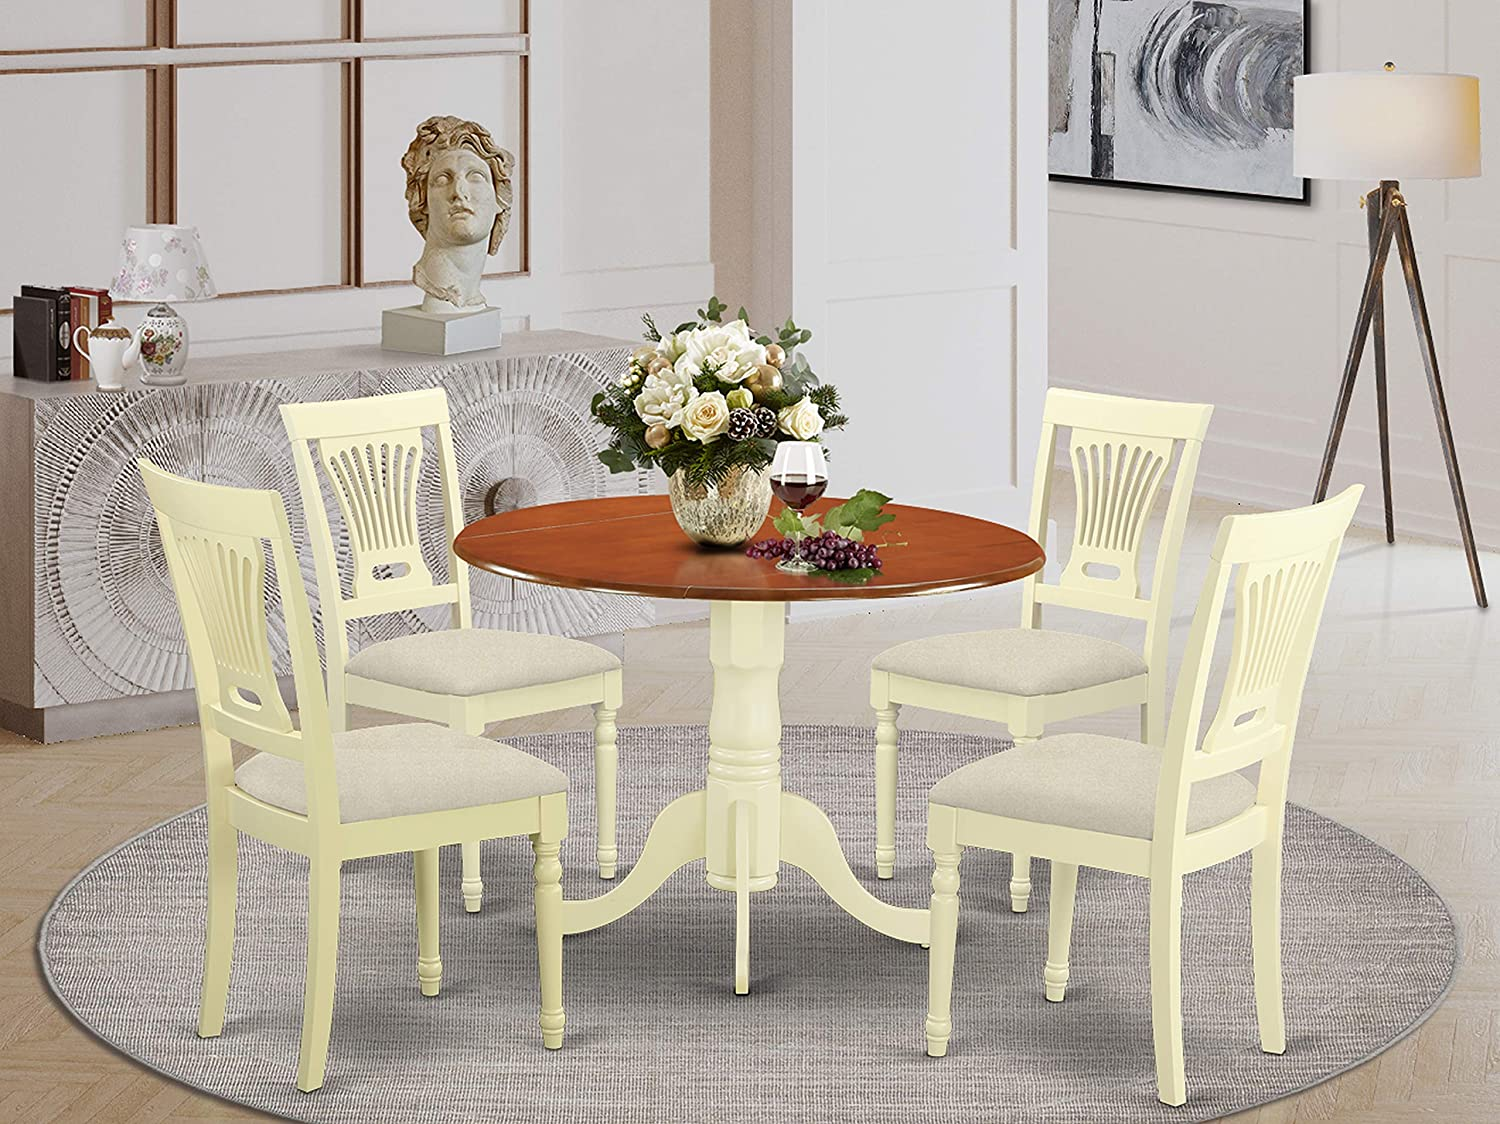 East West Furniture DLPL5-BMK-C 5-Piece dinette set Buttermilk & Cherry finish- Two 9-inch Drops Leave and Pedestal Legs kitchen dining table & 4 Slatted Back dining chairs